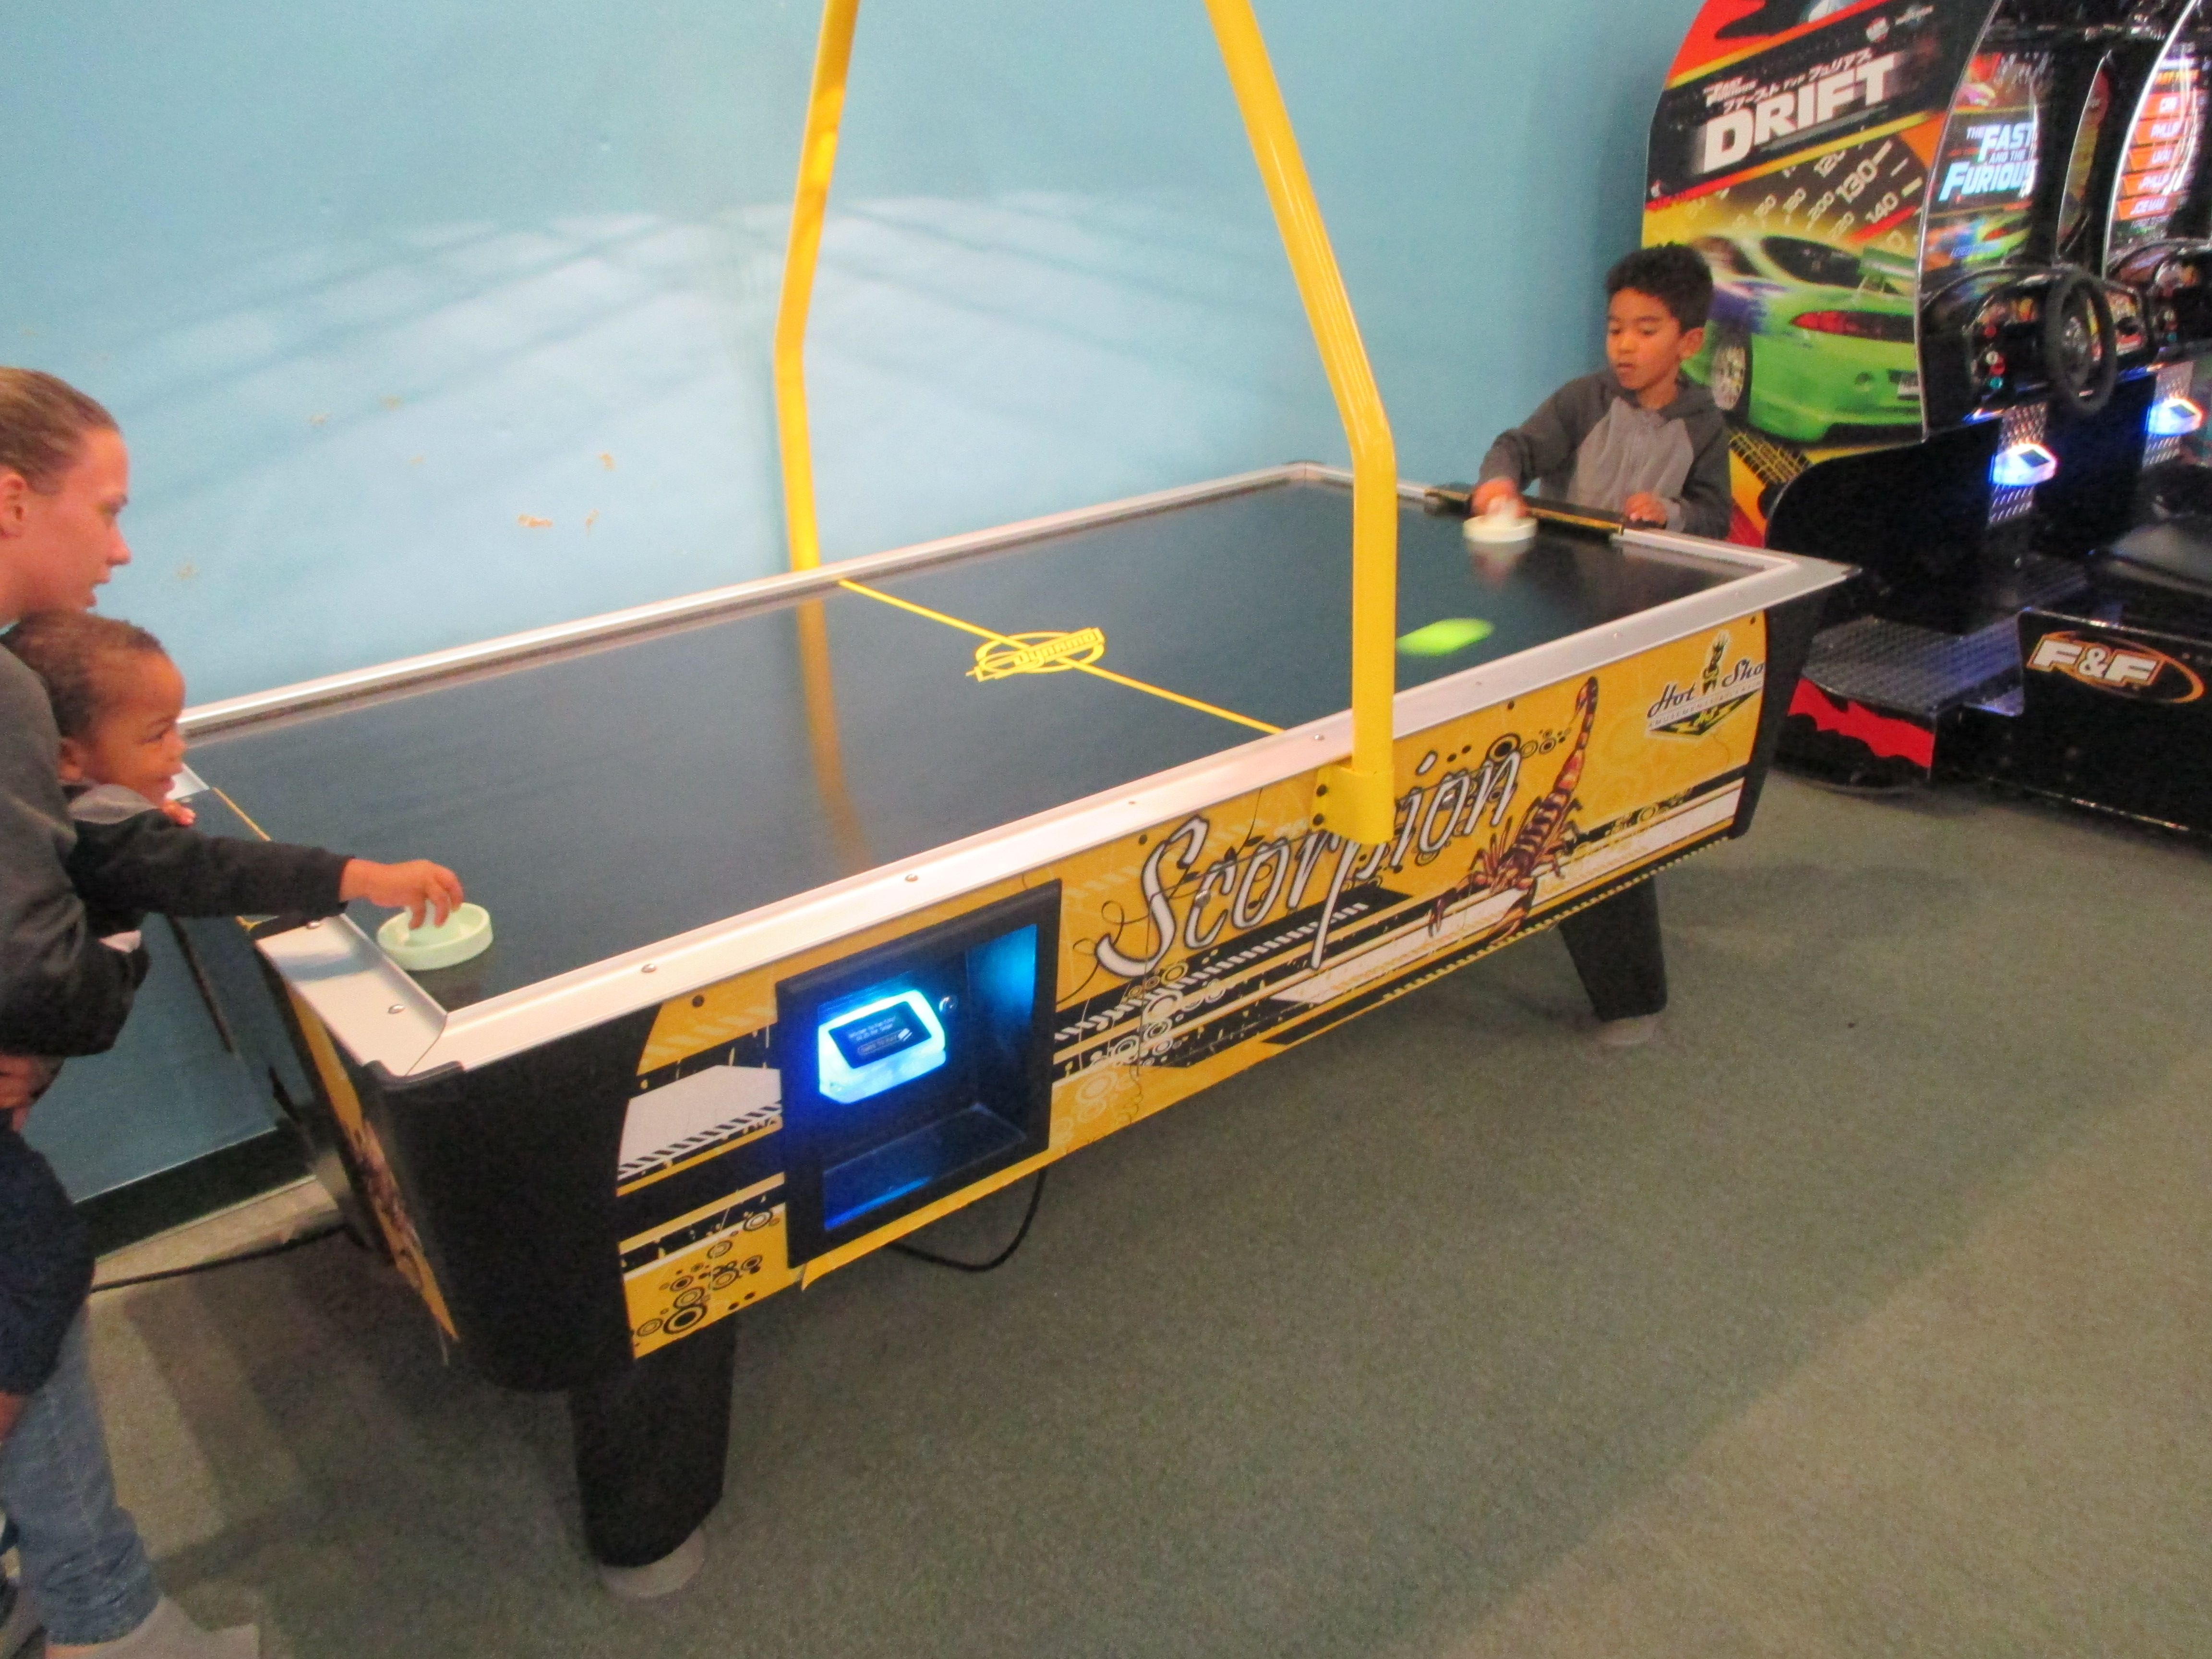 Come Out To Fun City Enjoy Our Arcade And We Also Have Unlimited Bounce Play You Can Great Laser Tag Arena Too